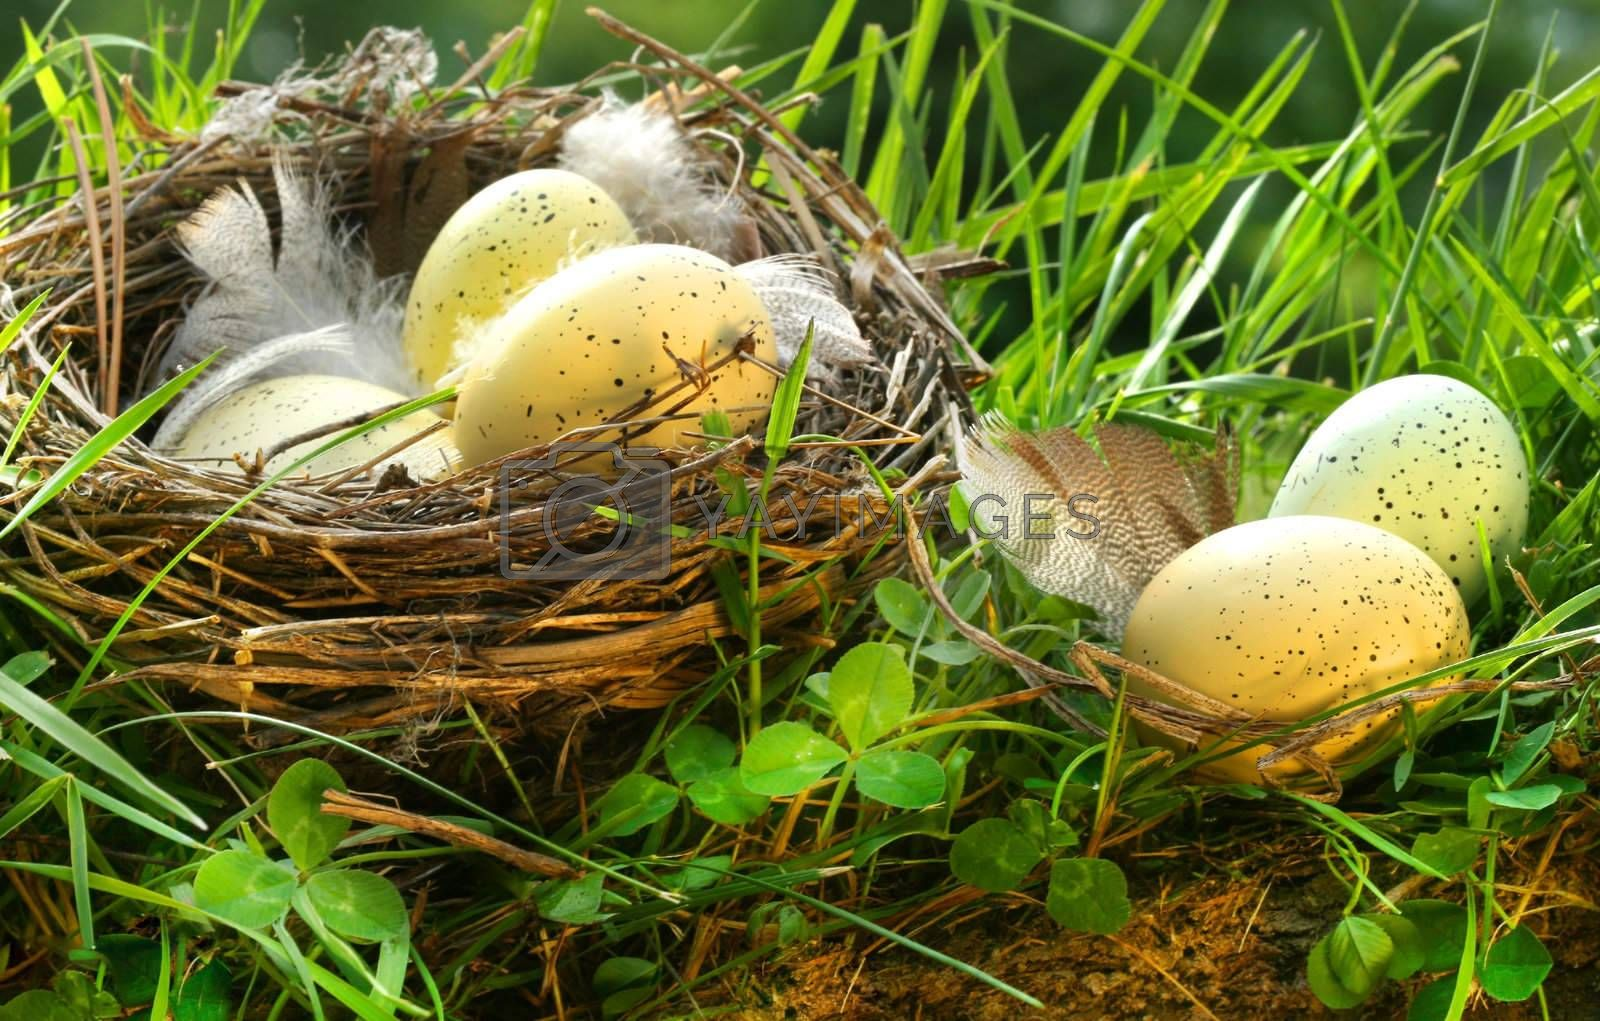 Bird's nest with eggs in the grass